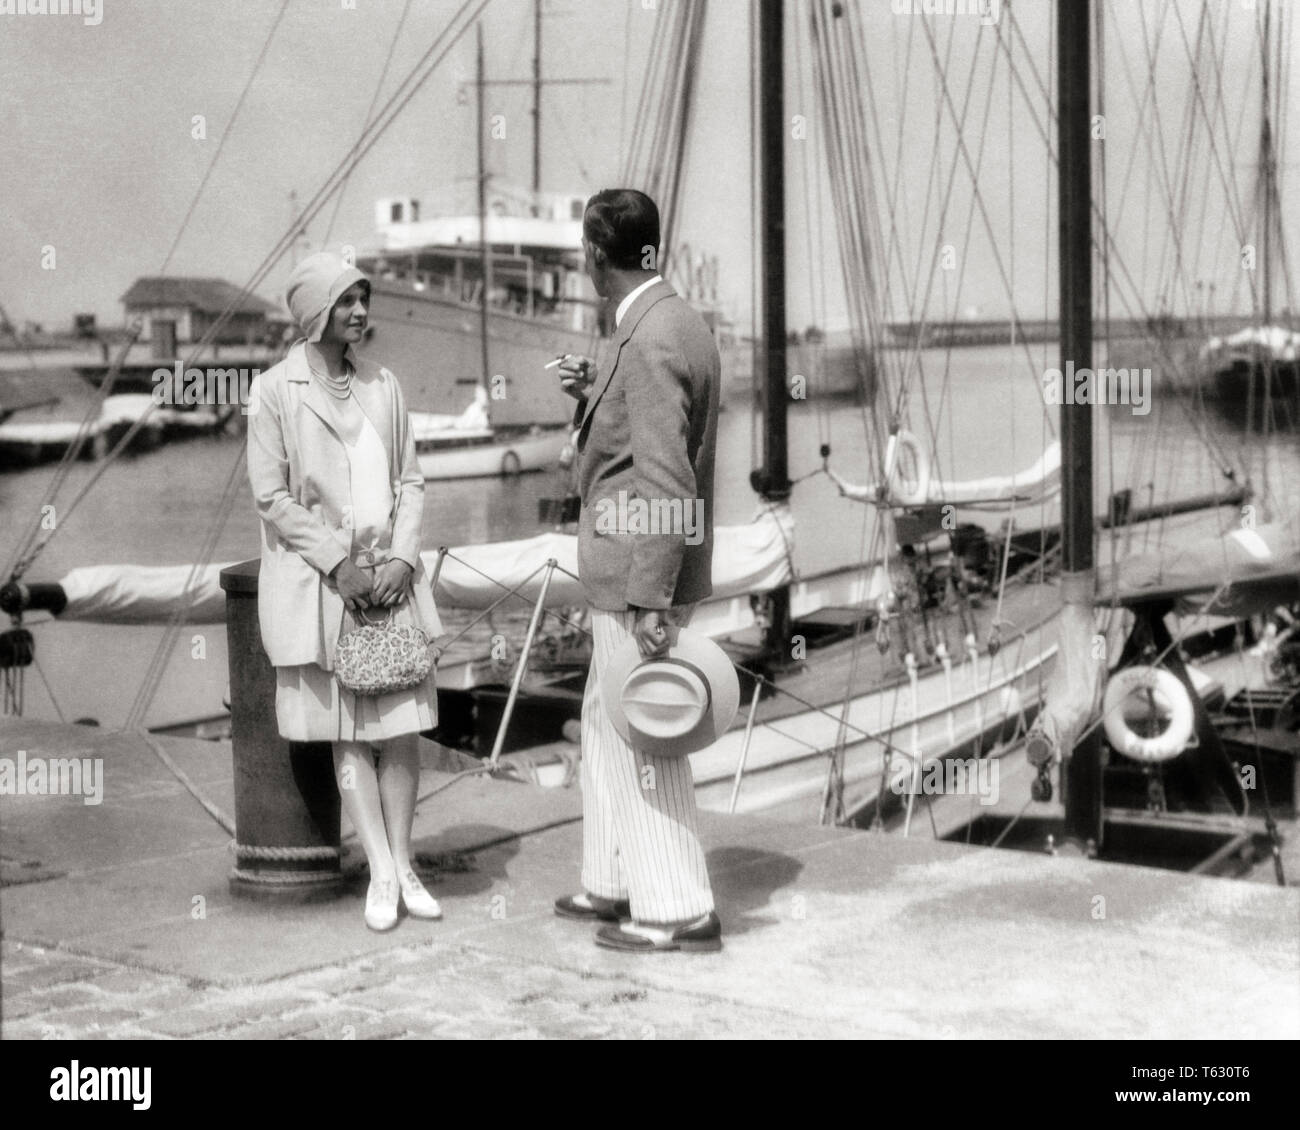 1920s WELL DRESSED STYLISH COUPLE STANDING TALKING TOGETHER MAN  SMOKING CIGARETTE YACHT MARINA DEAUVILLE FRANCE  - y1064 HAR001 HARS OLD FASHION 1 STYLE FRANCE VACATION YACHT JOY LIFESTYLE HISTORY CELEBRATION FEMALES MARRIED SPOUSE HUSBANDS HEALTHINESS LUXURY COPY SPACE FRIENDSHIP FULL-LENGTH LADIES PERSONS MALES B&W PARTNER SUMMERTIME RESORT TIME OFF DREAMS HAPPINESS ADVENTURE DISCOVERY STYLES TRIP GETAWAY RECREATION SEASIDE CLOCHE WELL DRESSED HOLIDAYS REGION NORTHWESTERN CONCEPTUAL SPORT JACKET SAIL BOAT STYLISH NORMANDY FASHIONS MID-ADULT MID-ADULT MAN MID-ADULT WOMAN PANAMA HAT - Stock Image